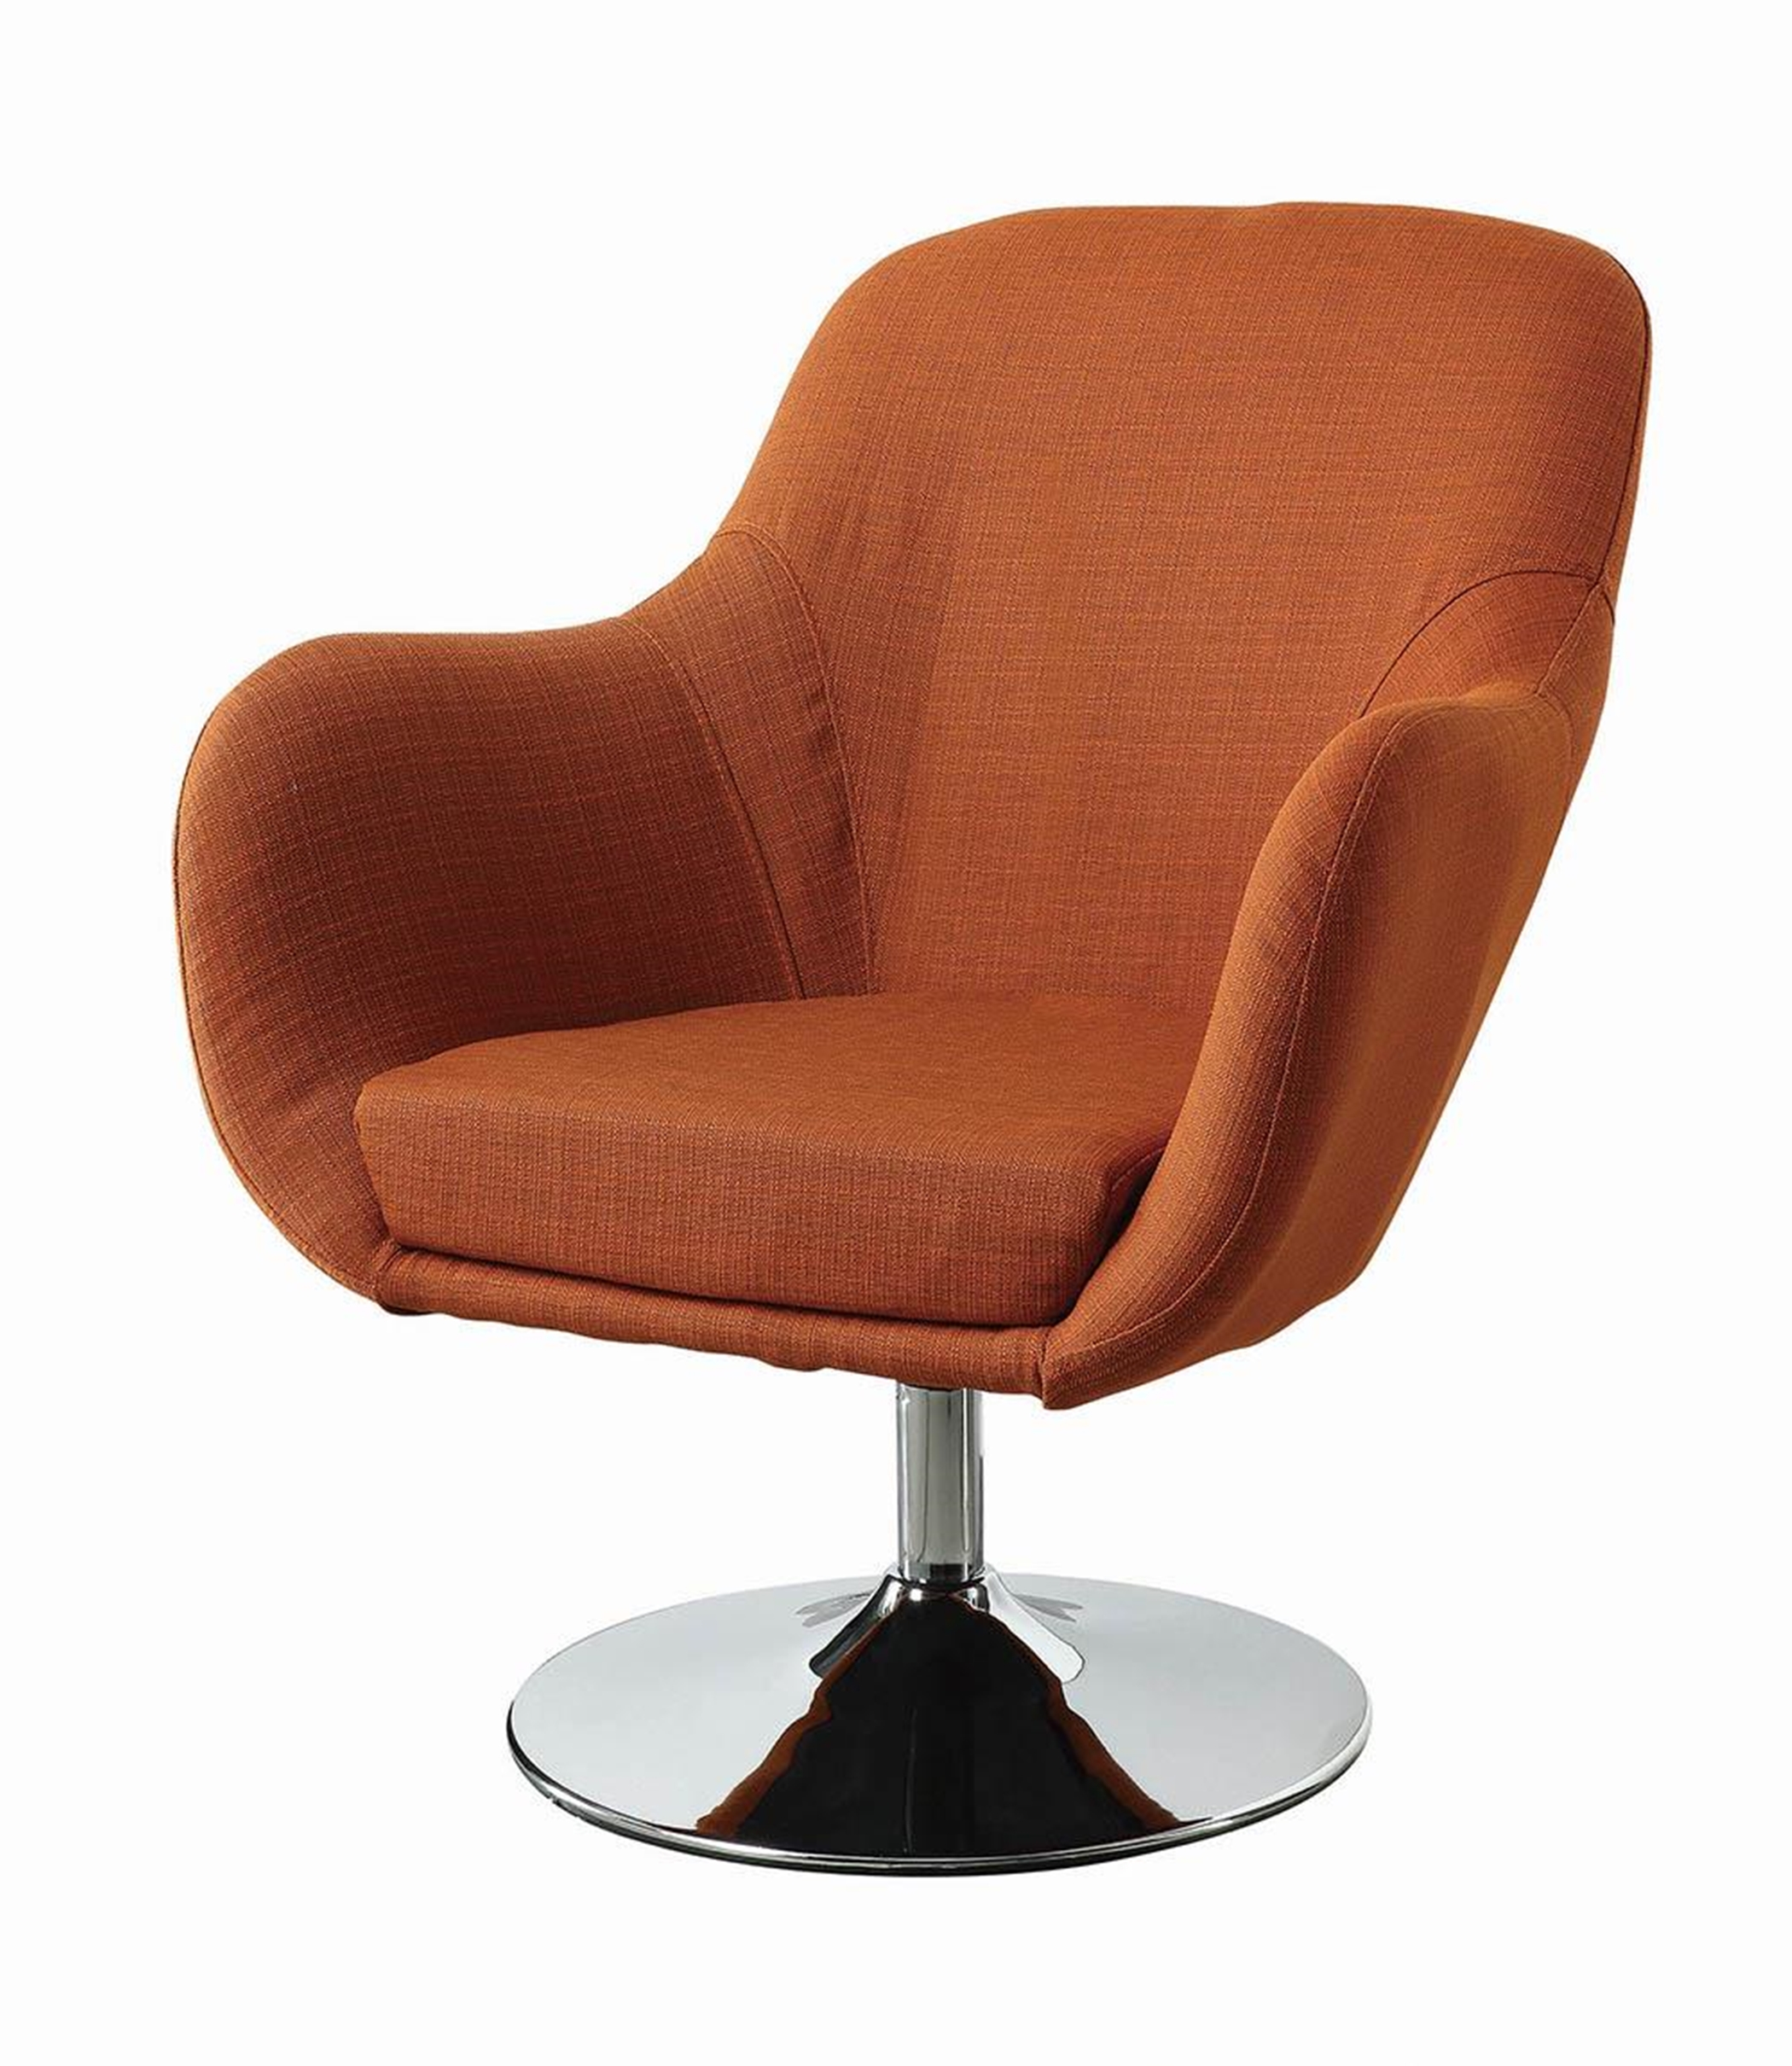 Contemporary Orange Accent Chair